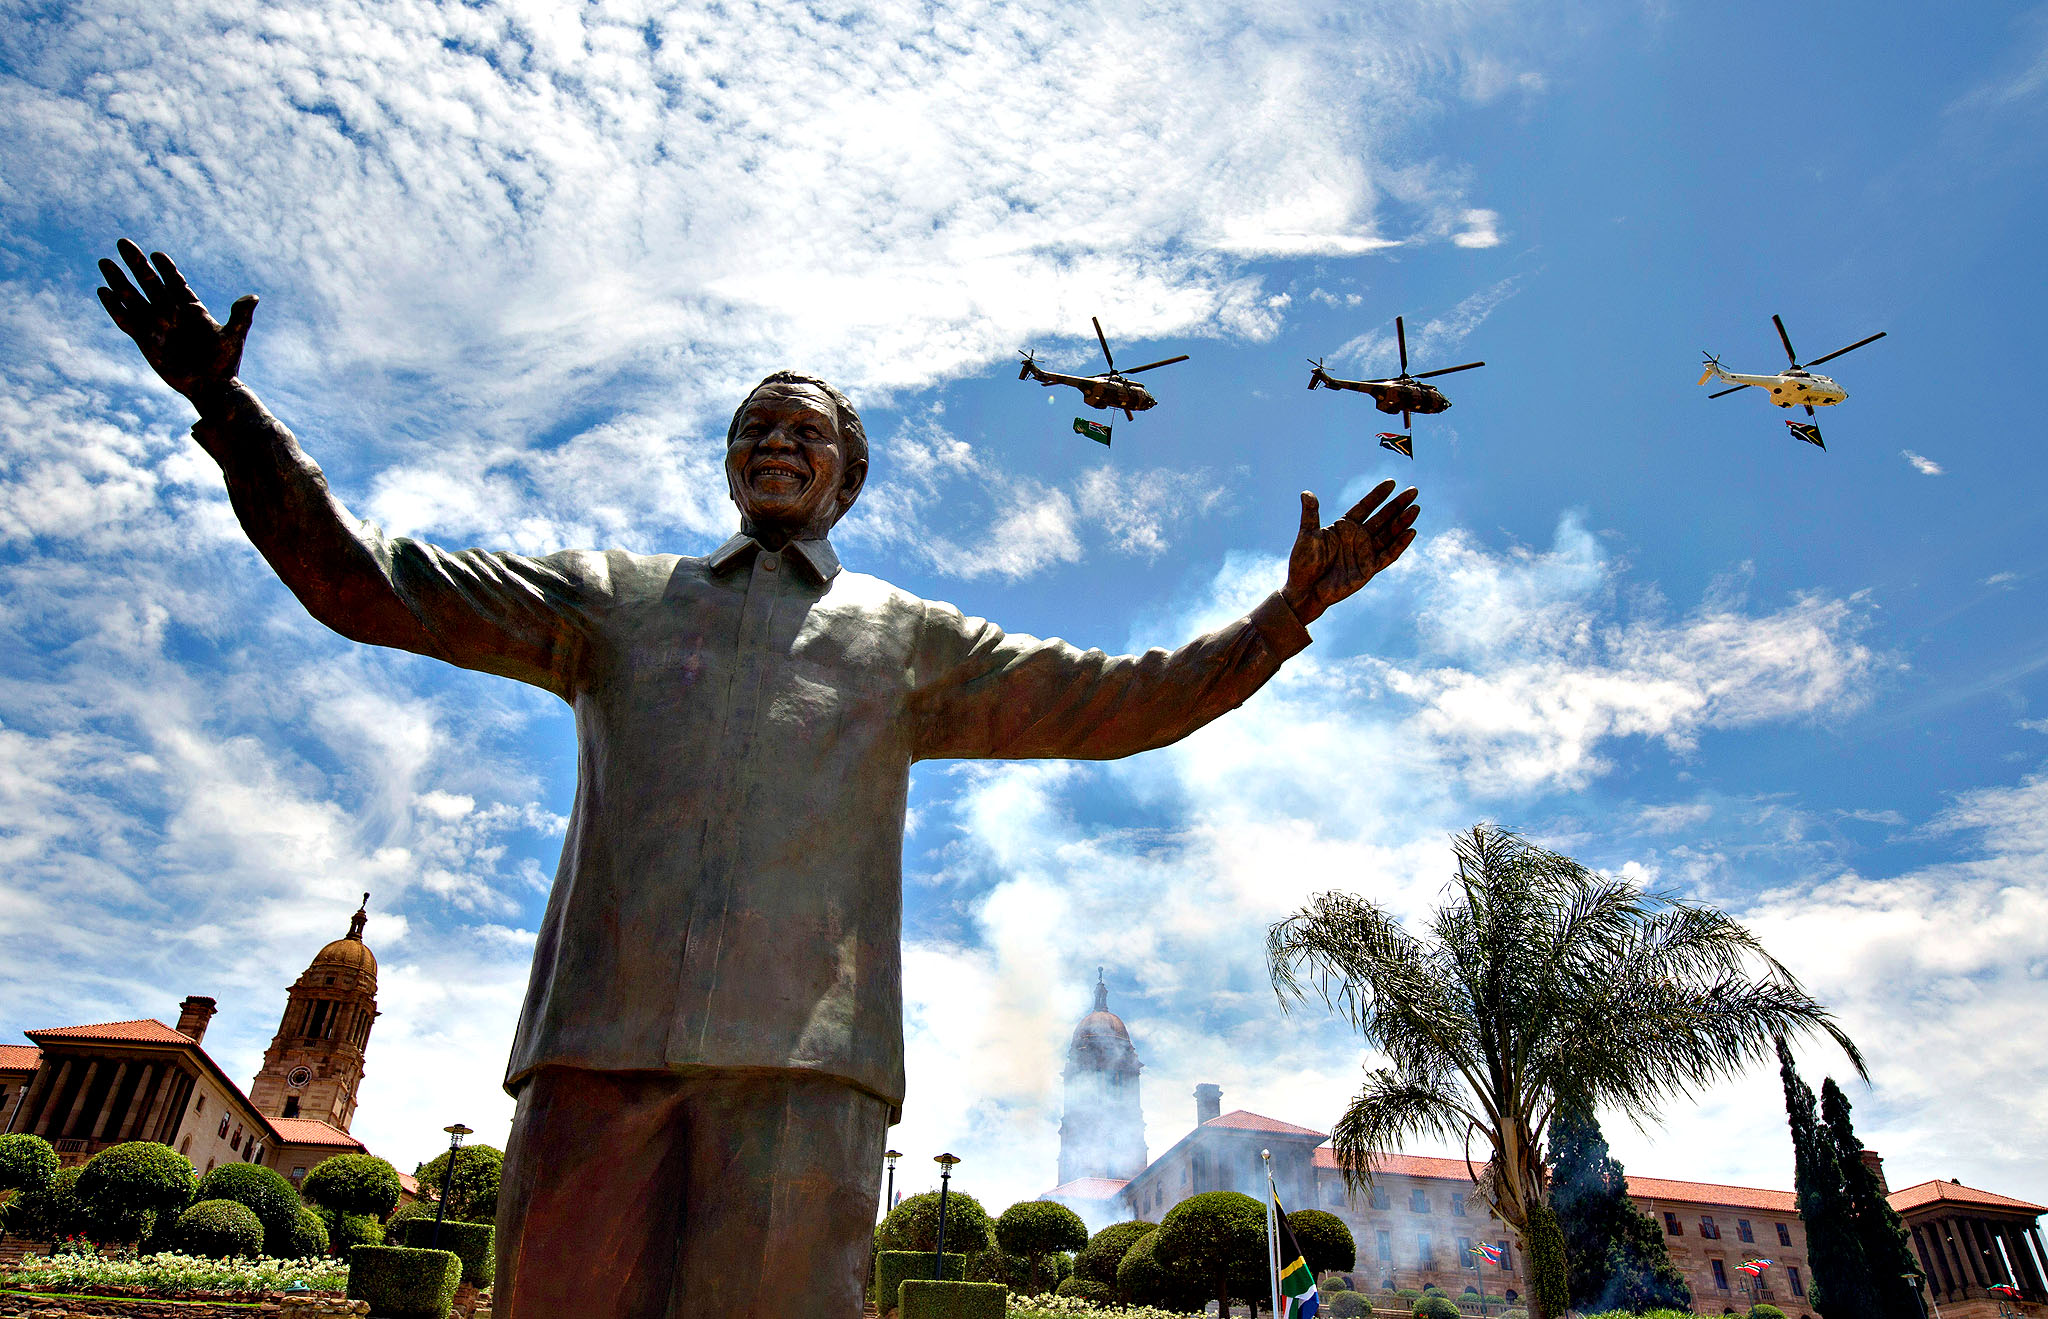 A military fly-past takes place above a statue of former South African president Nelson Mandela shortly after its unveiling at the Union Buildings on December 16, 2013 in Pretoria, South Africa.  South African president Jacob Zuma unveiled a 9 meter bronze statue of former South African president Nelson Mandela as part of the Day of Reconciliation celebrations.